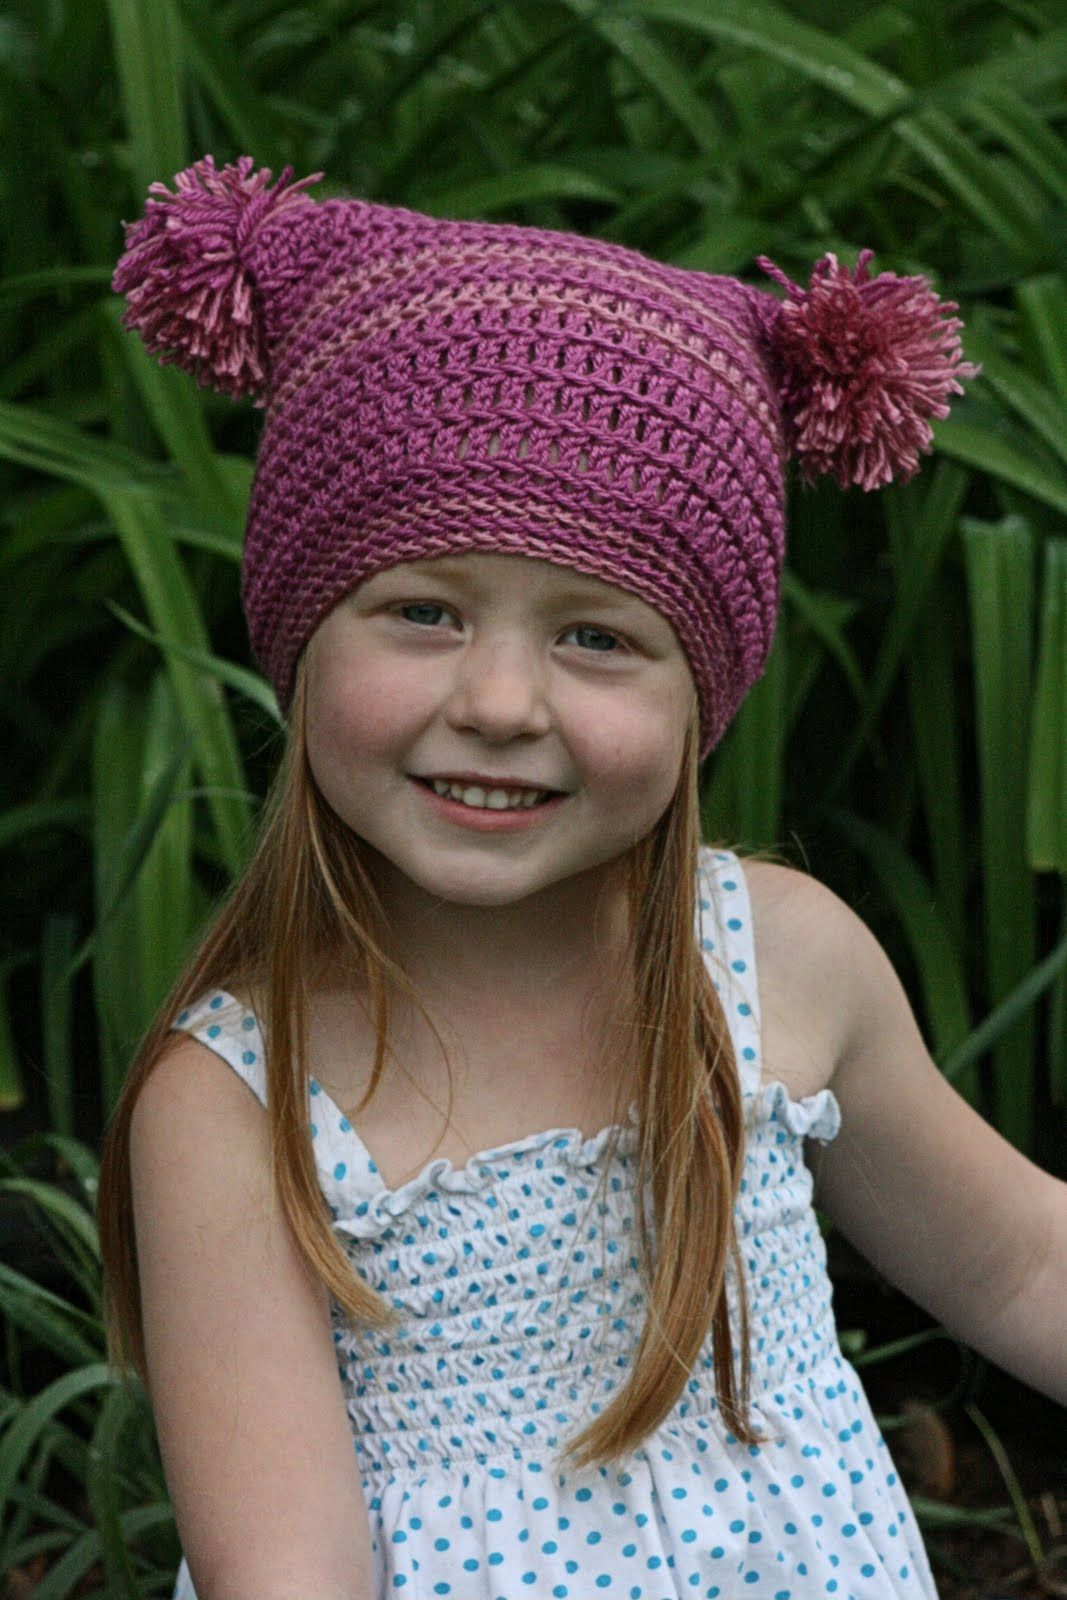 Free Crochet Pattern To Make This Pom Pom Hat Pom Poms Tassels